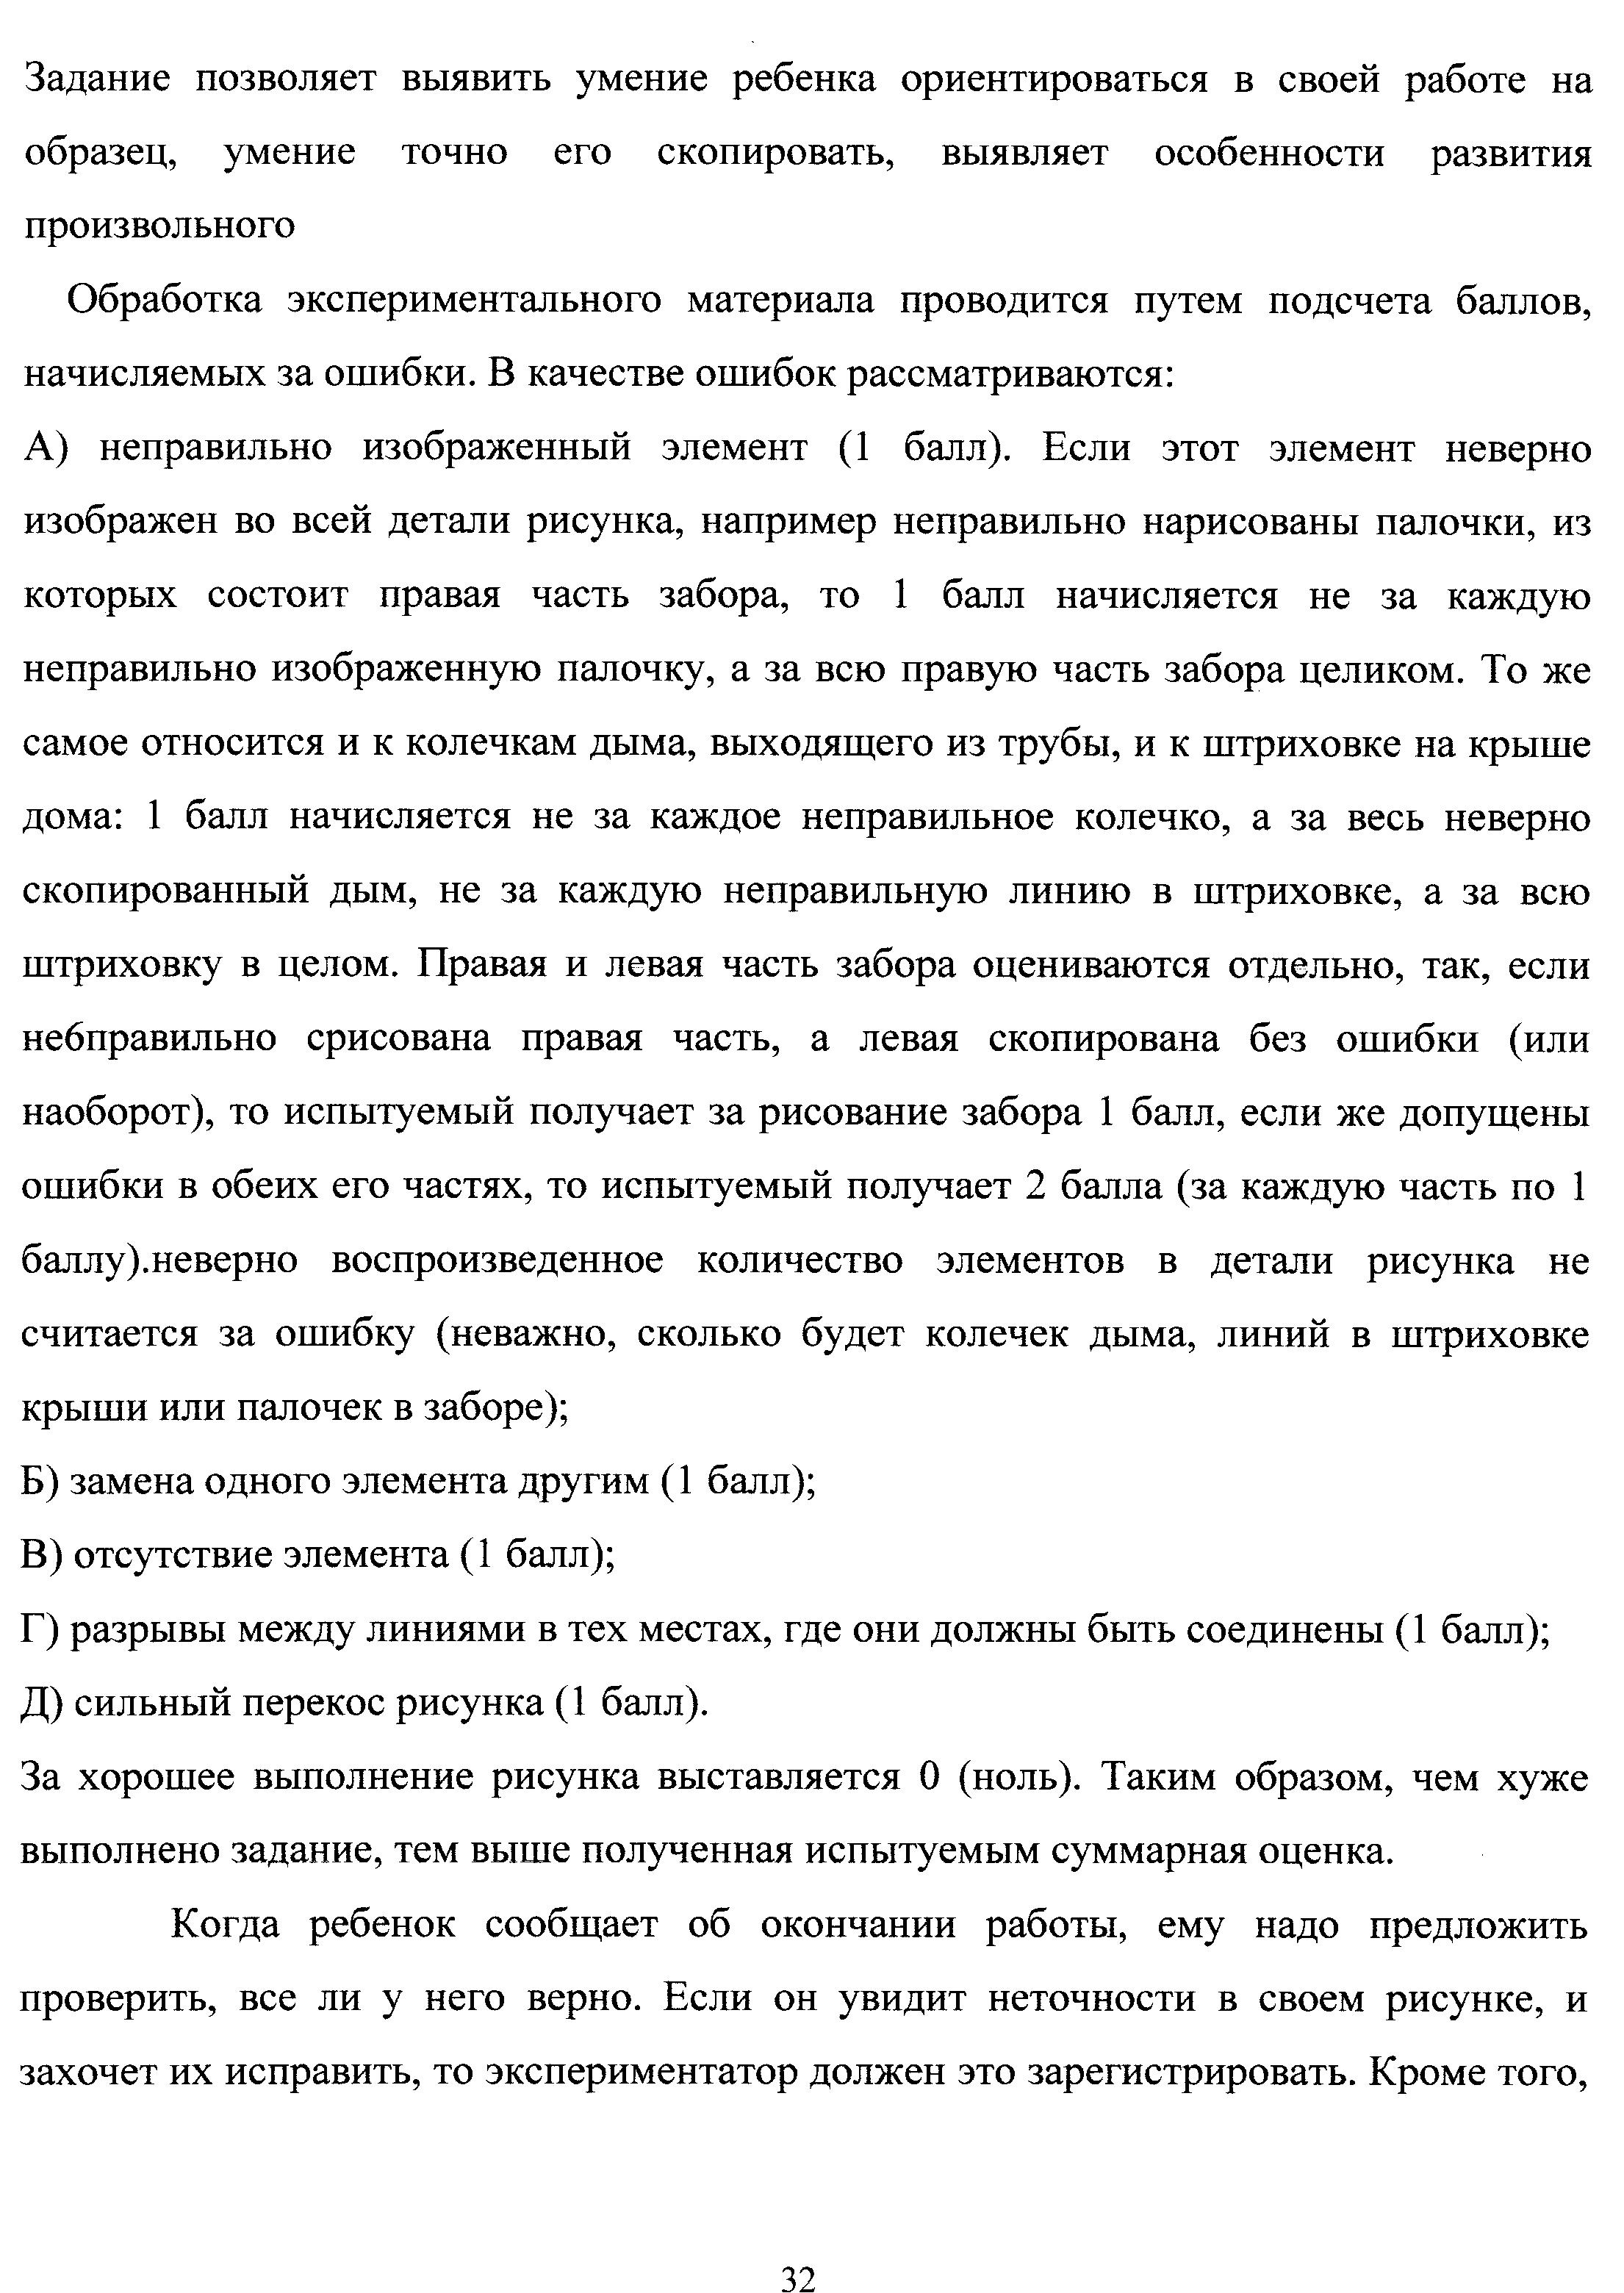 C:\Users\ЛАРИСА\Documents\Scanned Documents\Рисунок (136).jpg